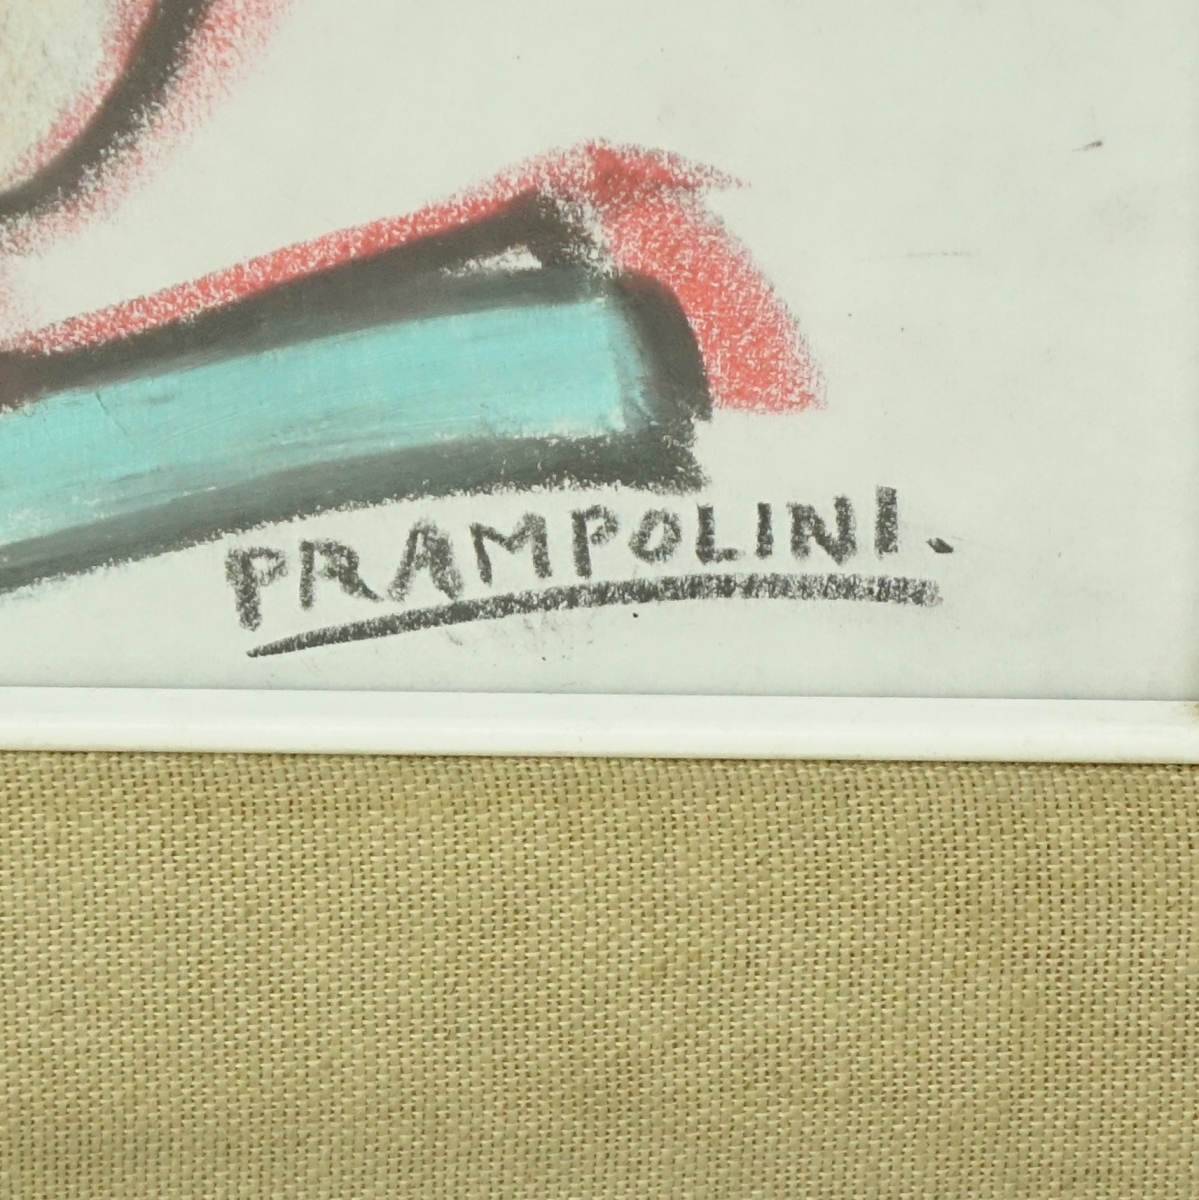 Enrico Prampolini Chalk Drawing